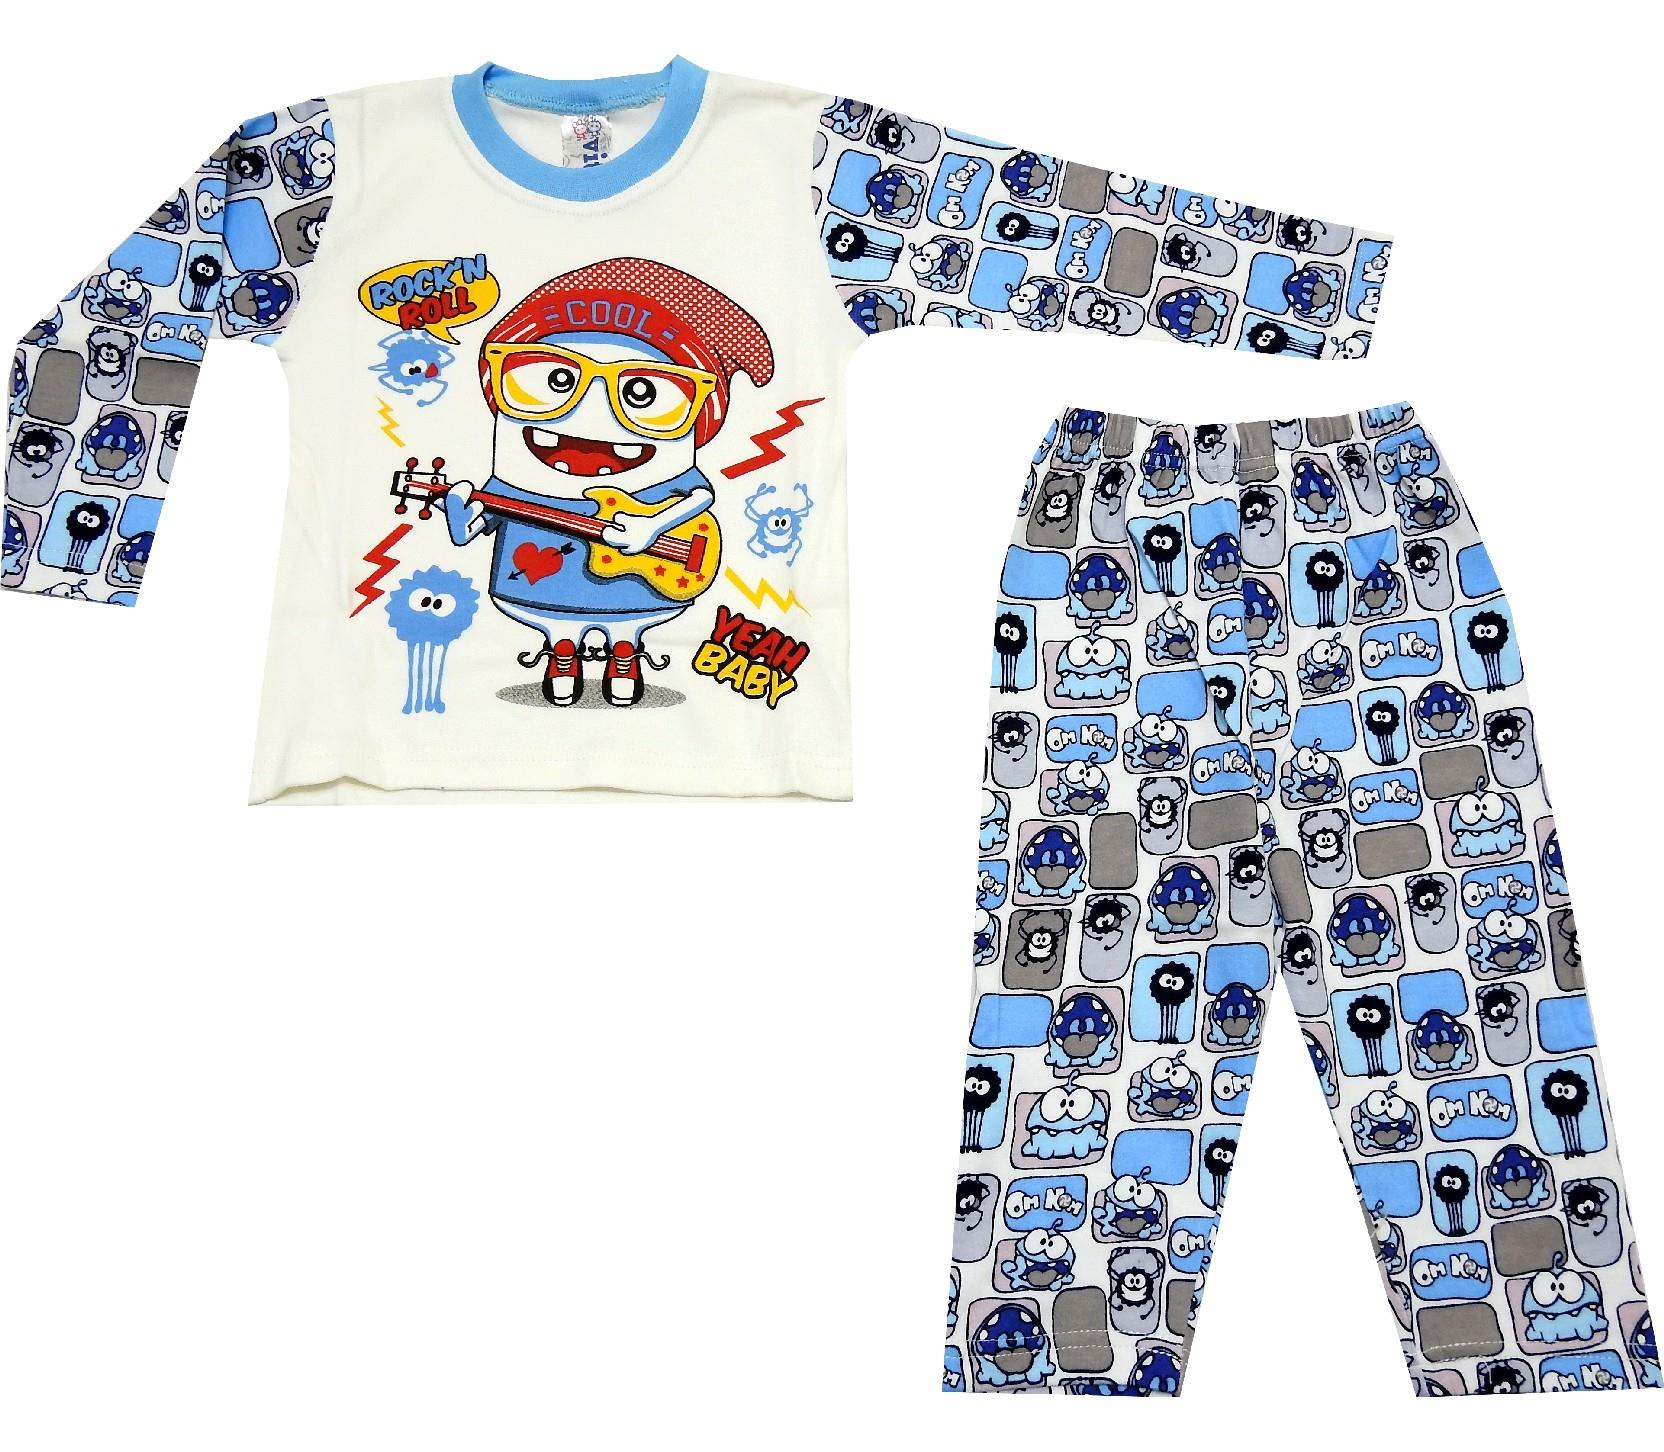 ROCK'N ROLL PRINTED DESIGN PYJAMAS DOUBLE SET FOR BOY (1-2-3 AGE)